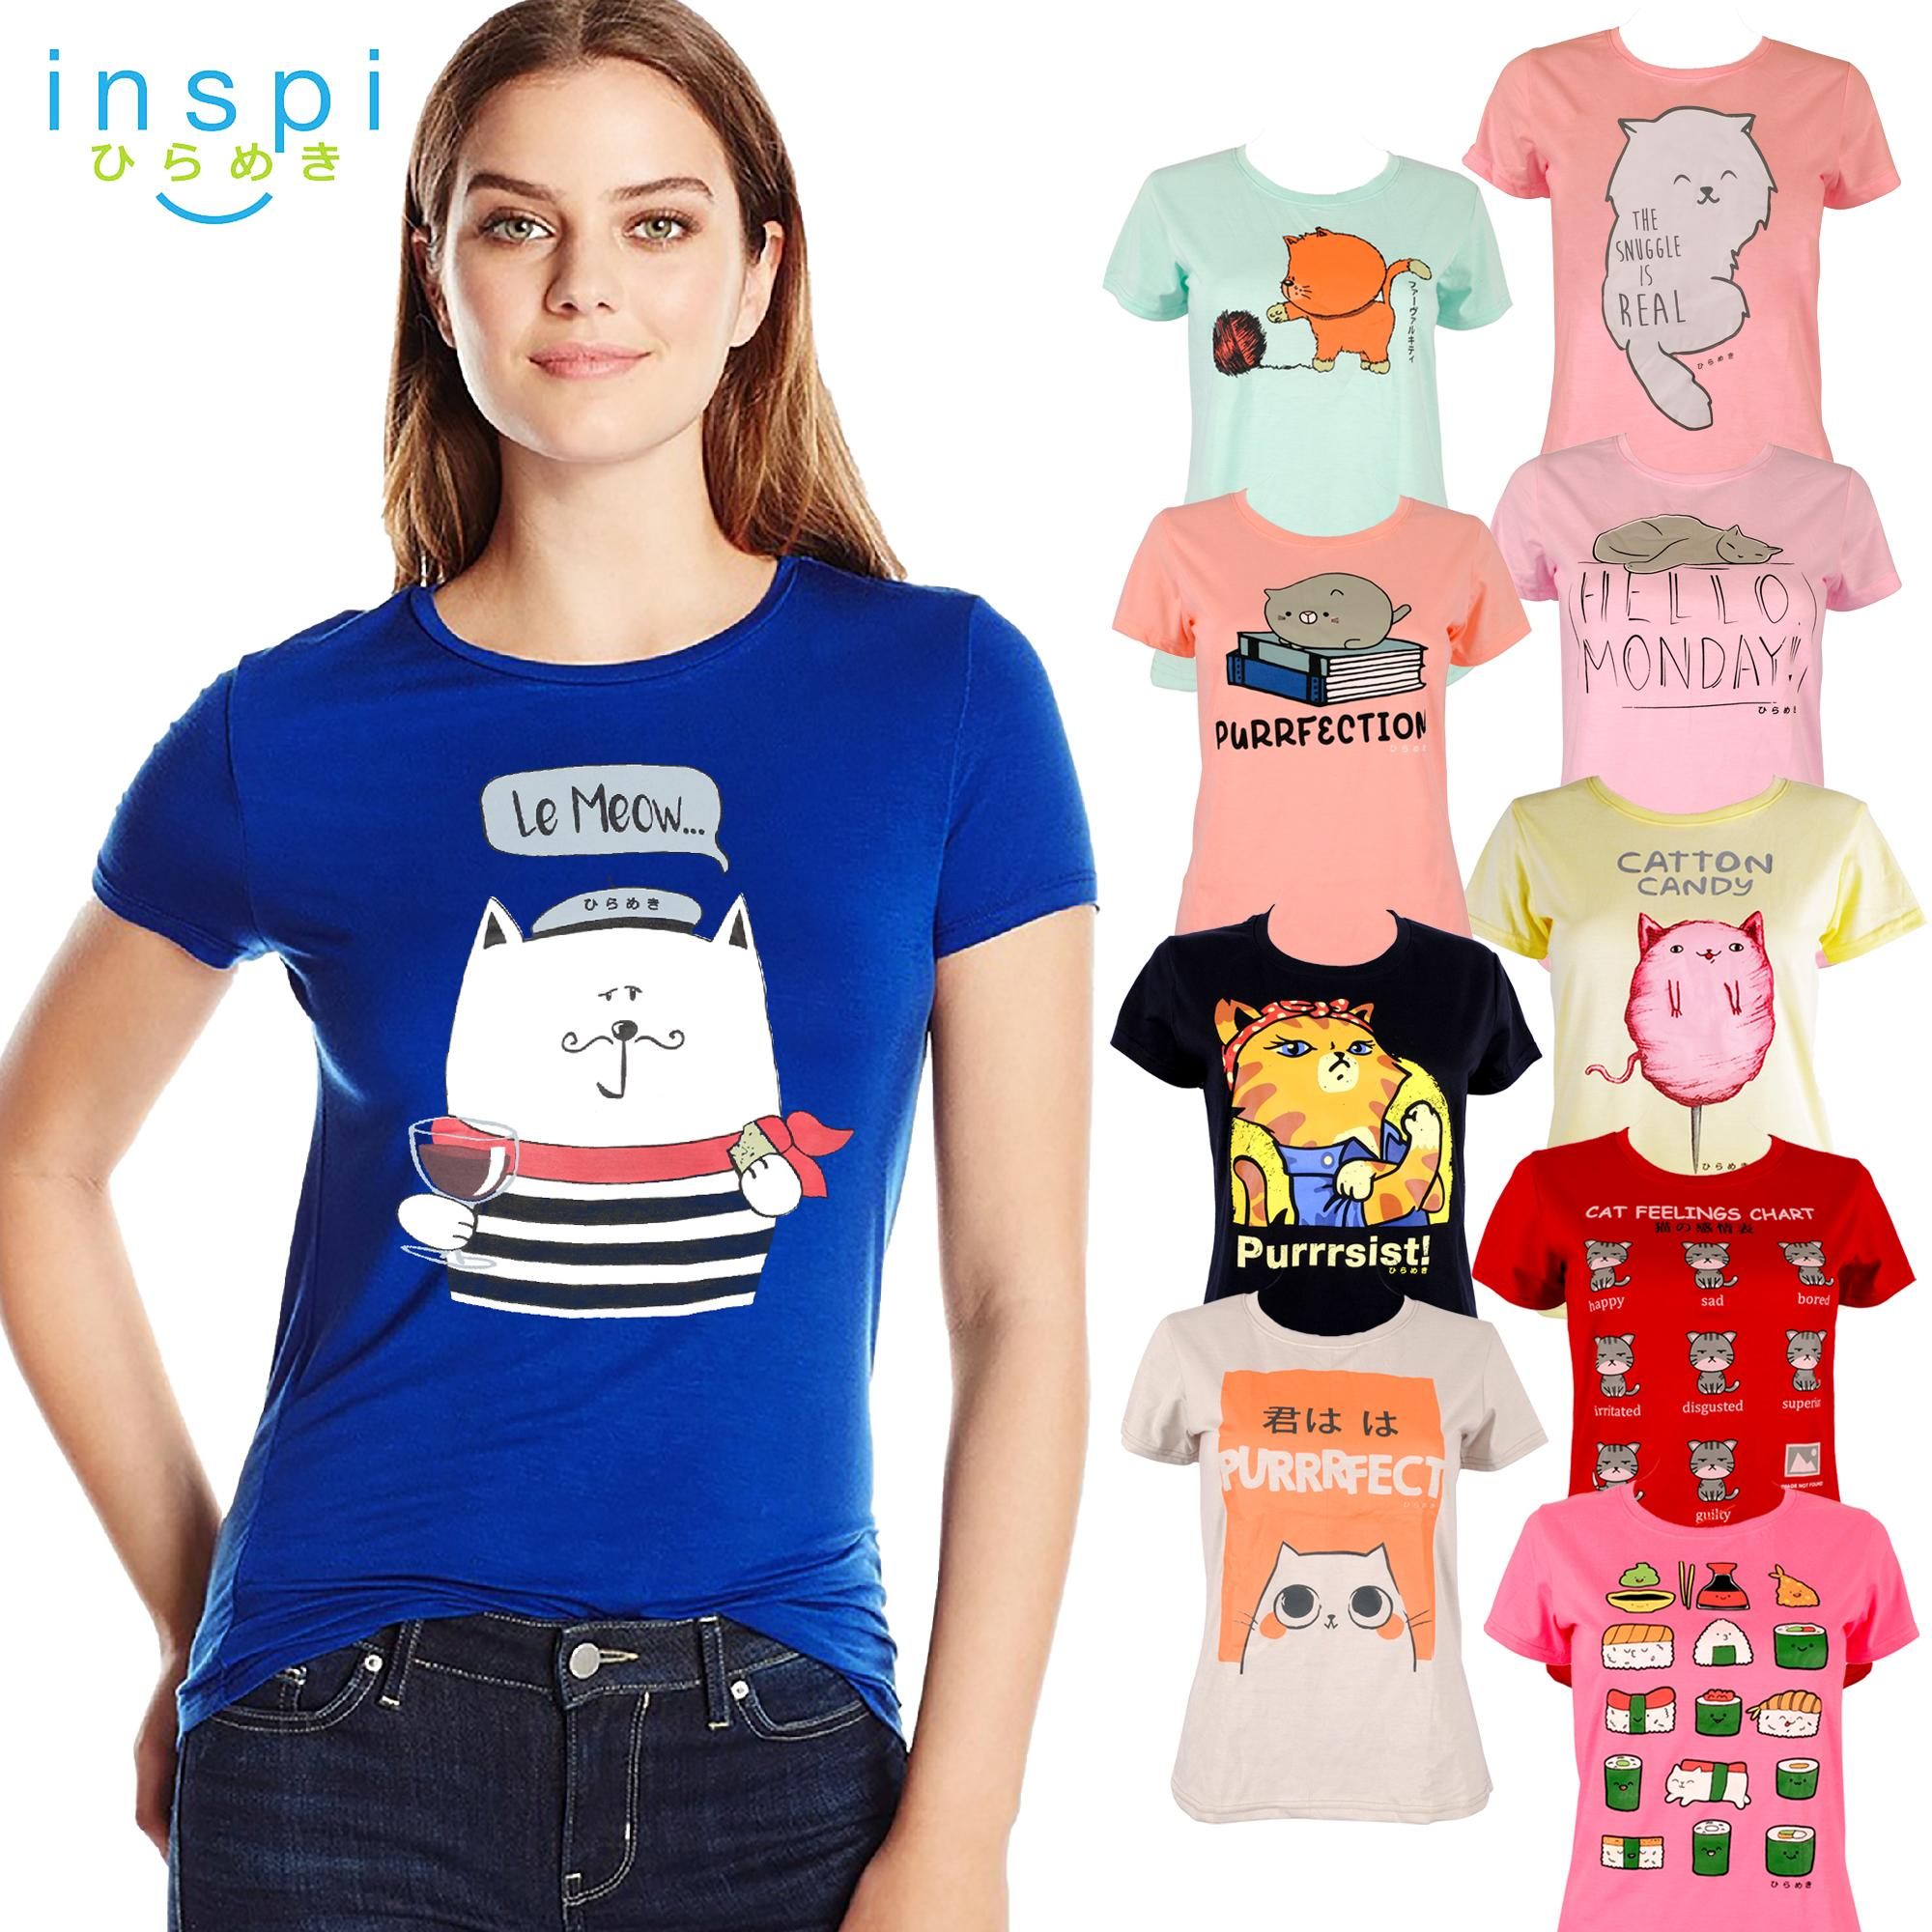 faf233820 INSPI Tees Ladies Neko Collection tshirt printed graphic tee Ladies t shirt  shirts women tshirts for